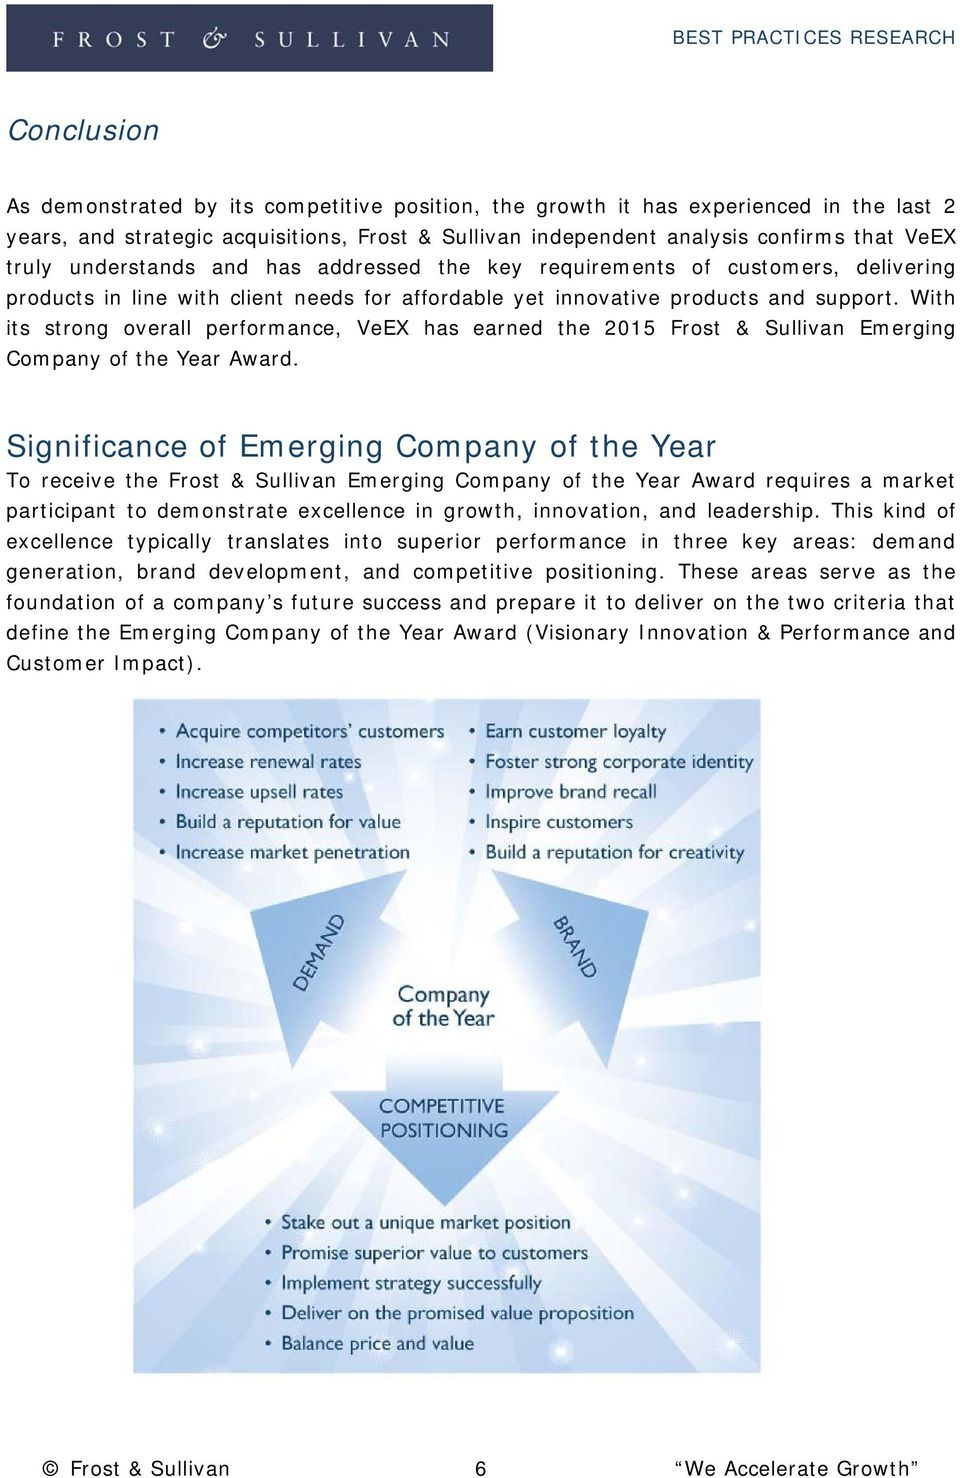 With its strong overall performance, VeEX has earned the 2015 Frost & Sullivan Emerging Company of the Year Award.